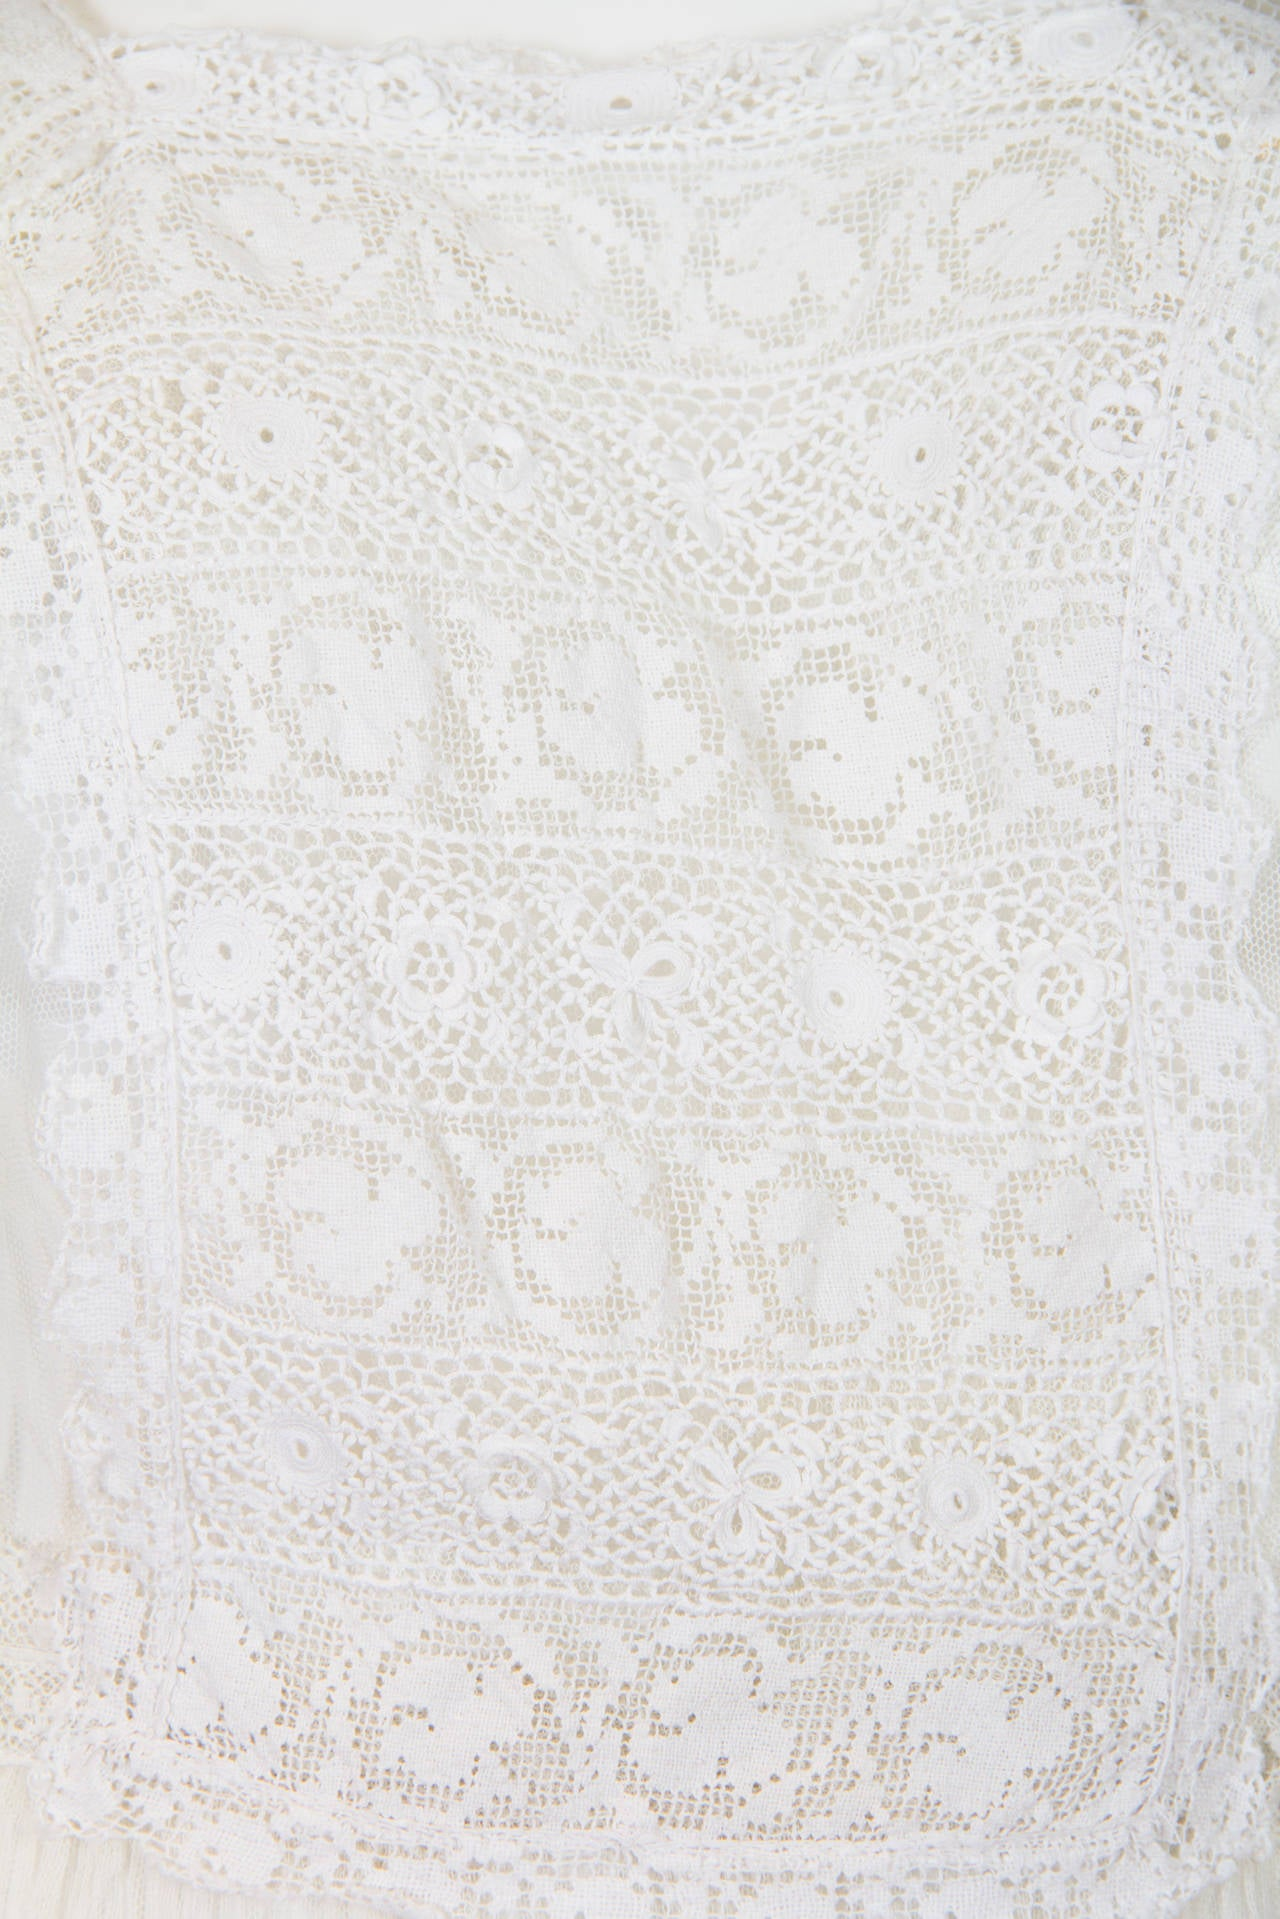 1910s Cotton Net Dress with Irish crochet and lace trim 5